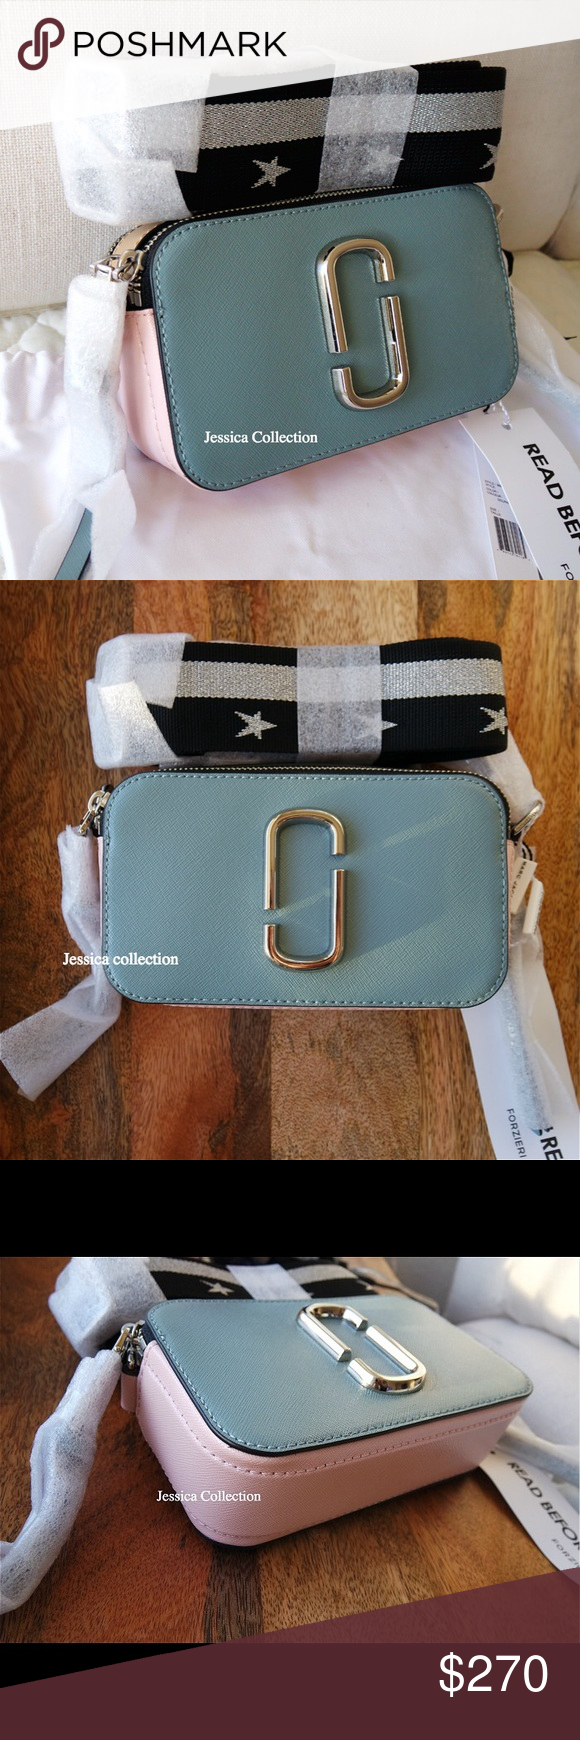 384196d91311b Marc Jacobs Dolphin Blue Snapshot Camera Bag 100% Authentic and NWT,  crafted in saffiano